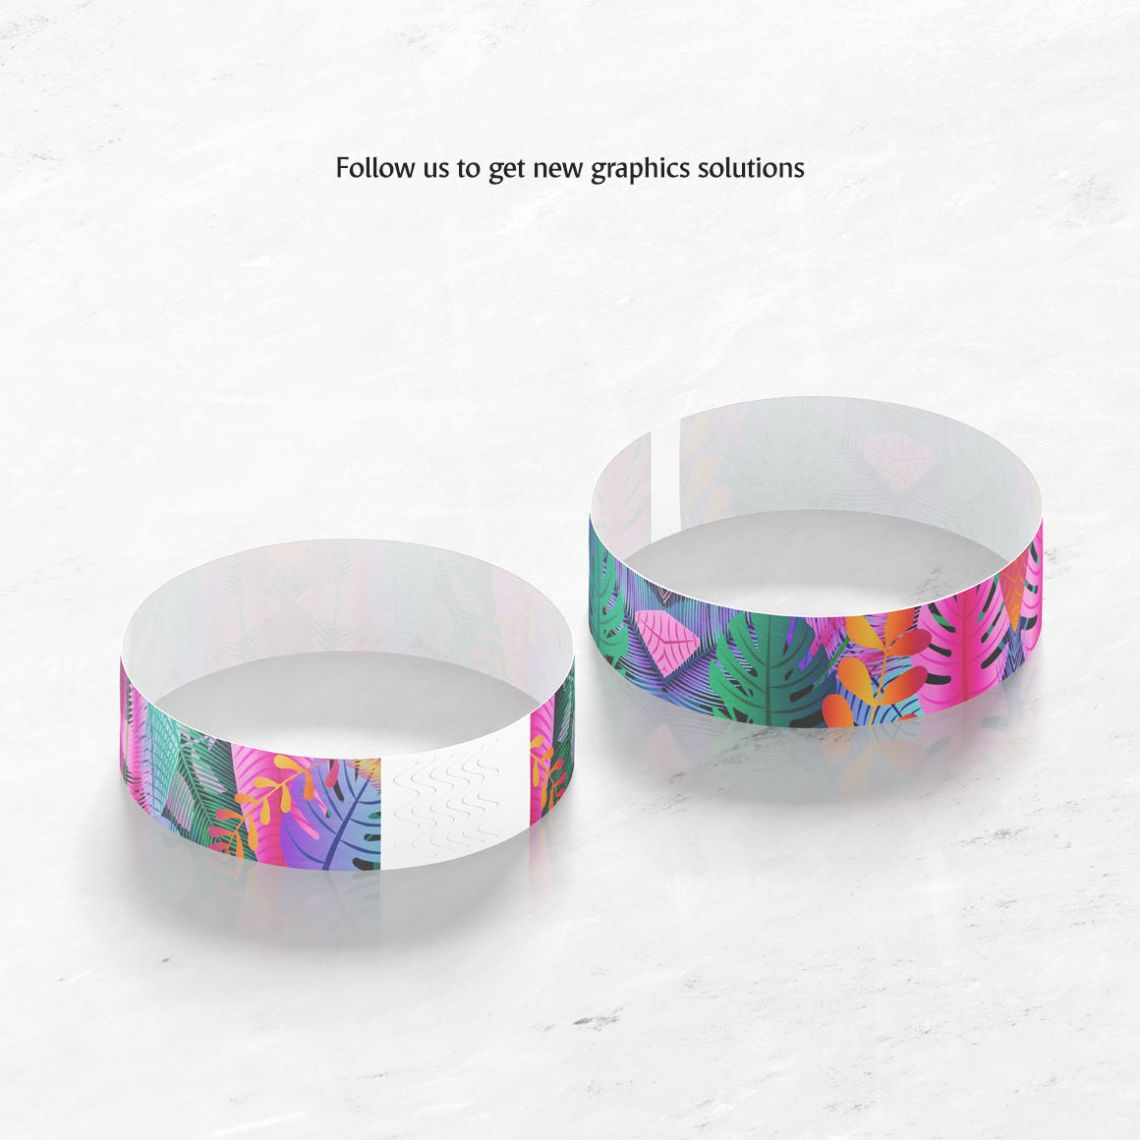 Download Wristband Mockup Psd Free Yellow Images